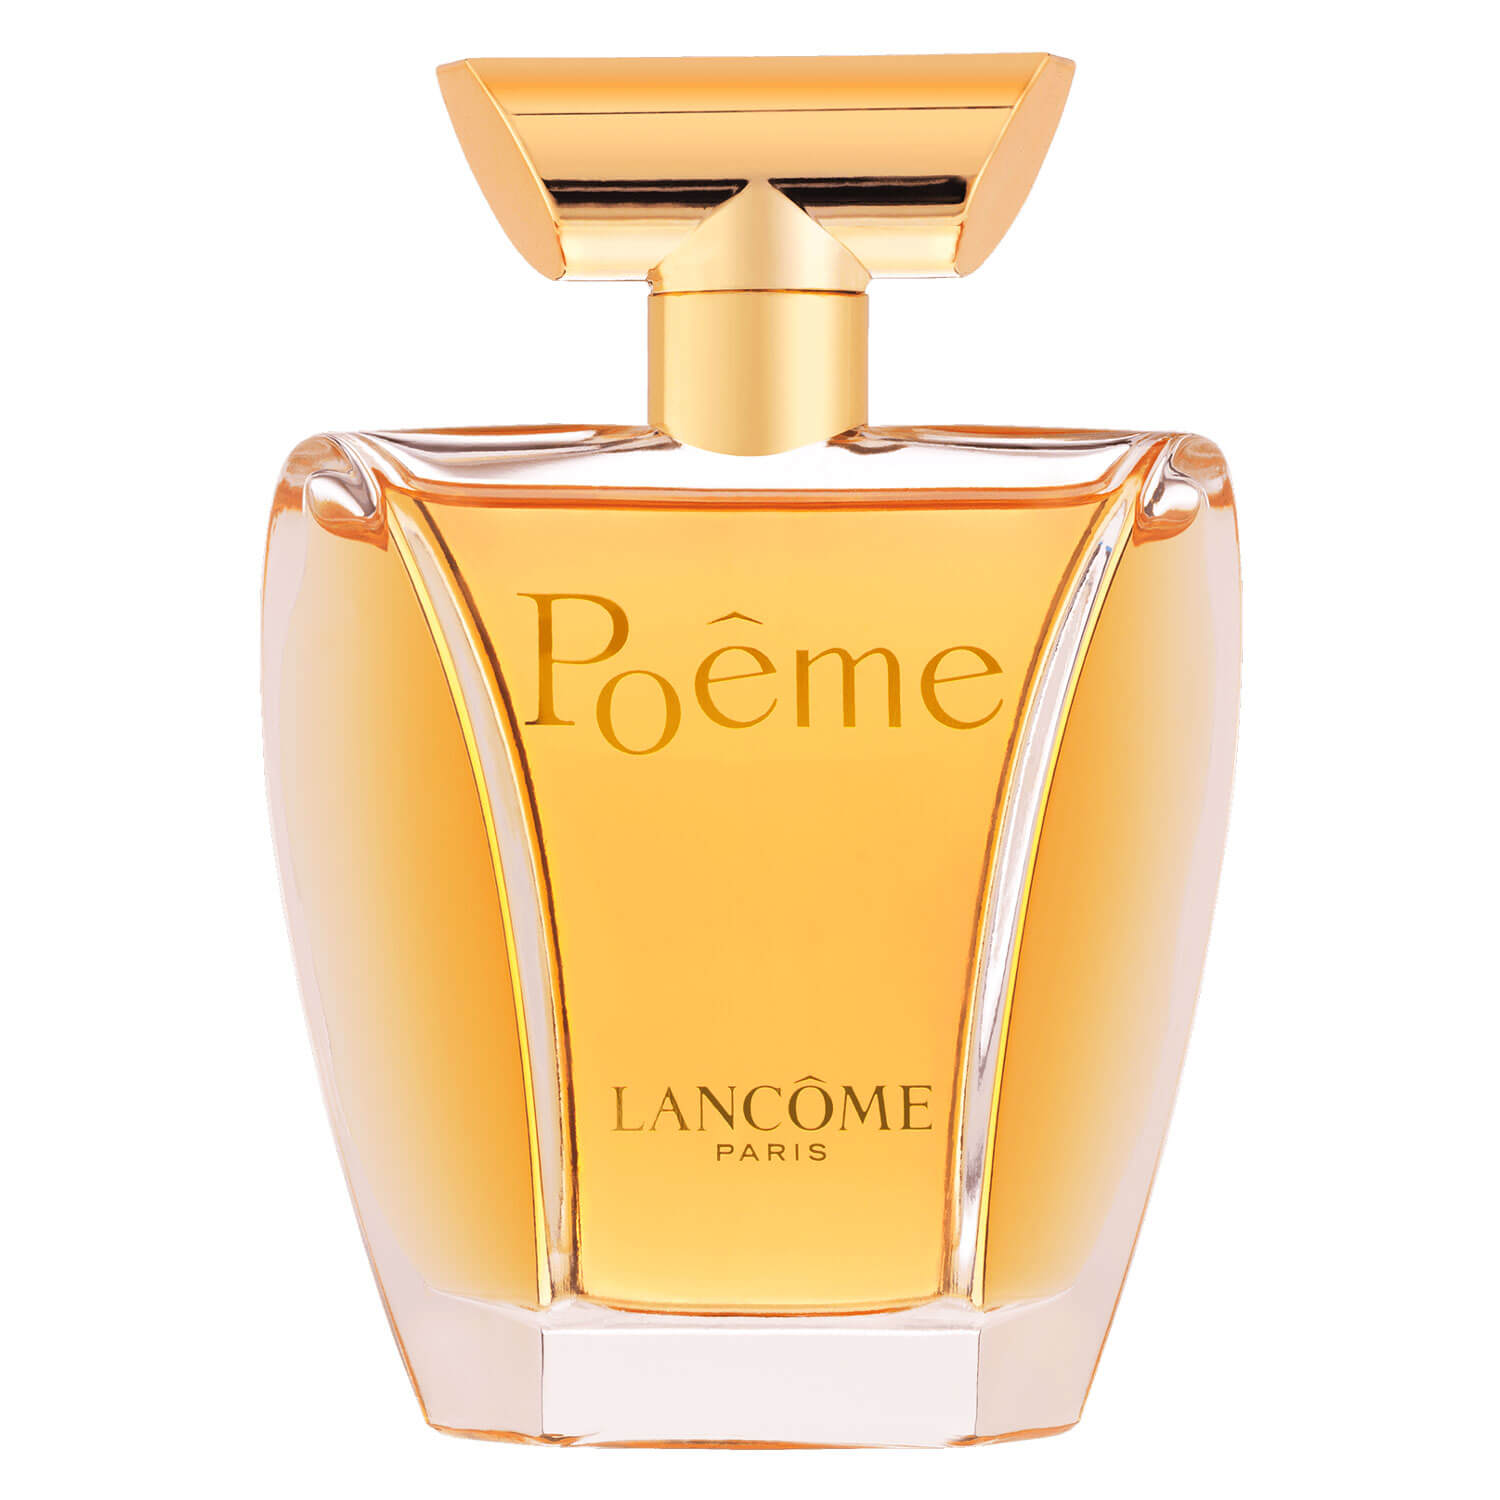 Parfum Diamantform Poeme Eau De Parfum